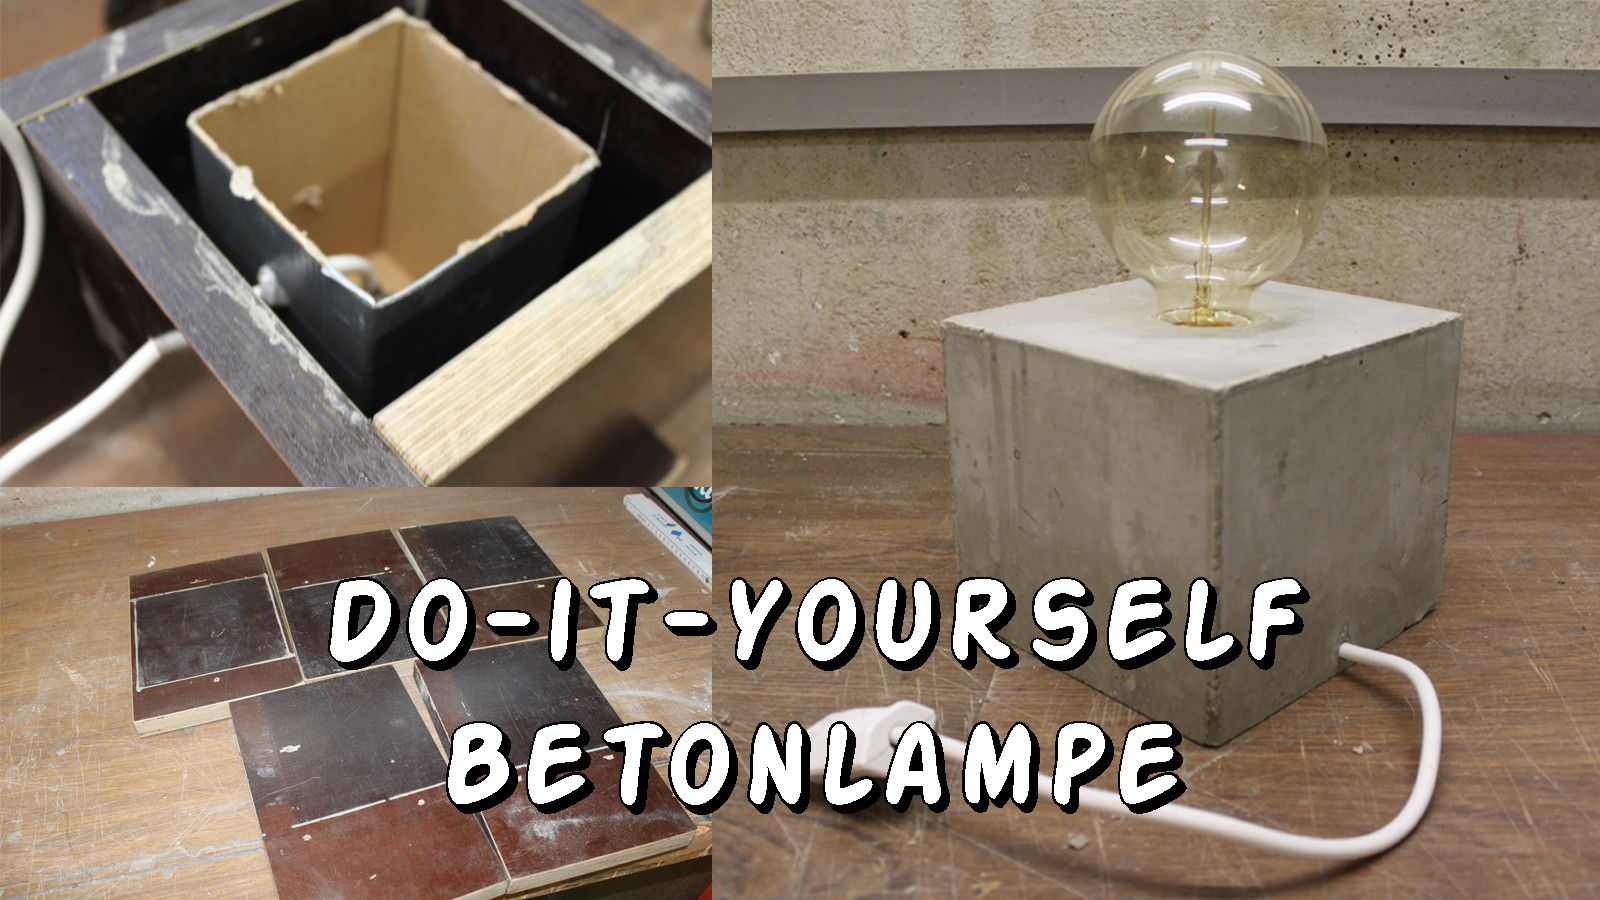 Diy Betonlampe  Do It Yourself Betonlampe Daytrippers